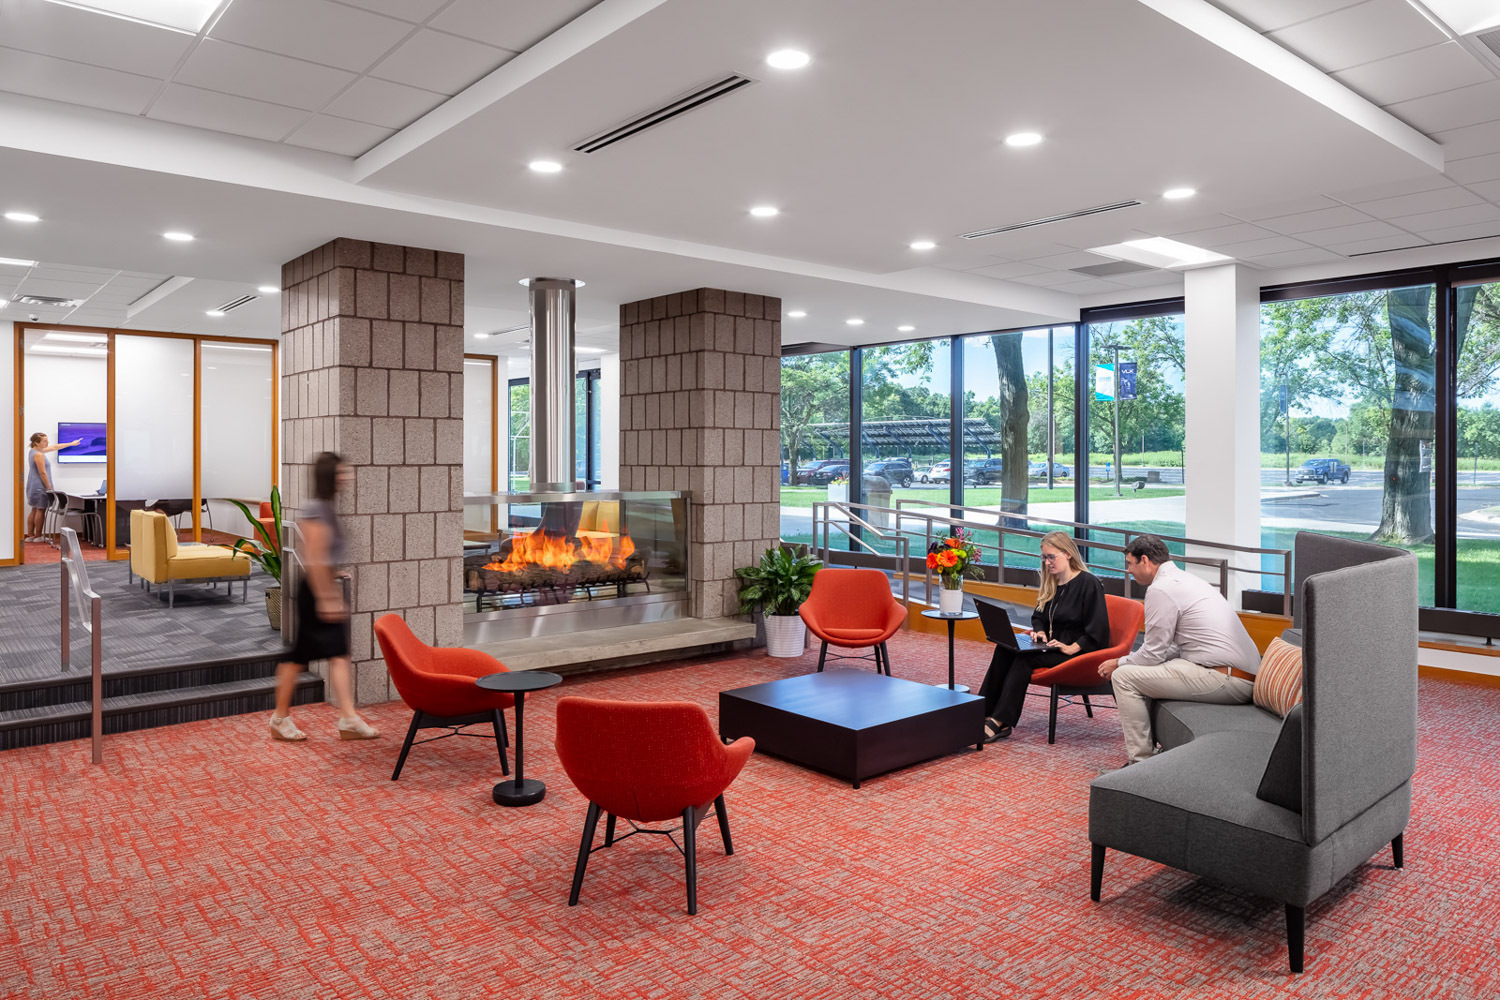 iSpace Environments Tennant Company Eden Prairie Minnesota Office Open Meeting Space Fireplace Design